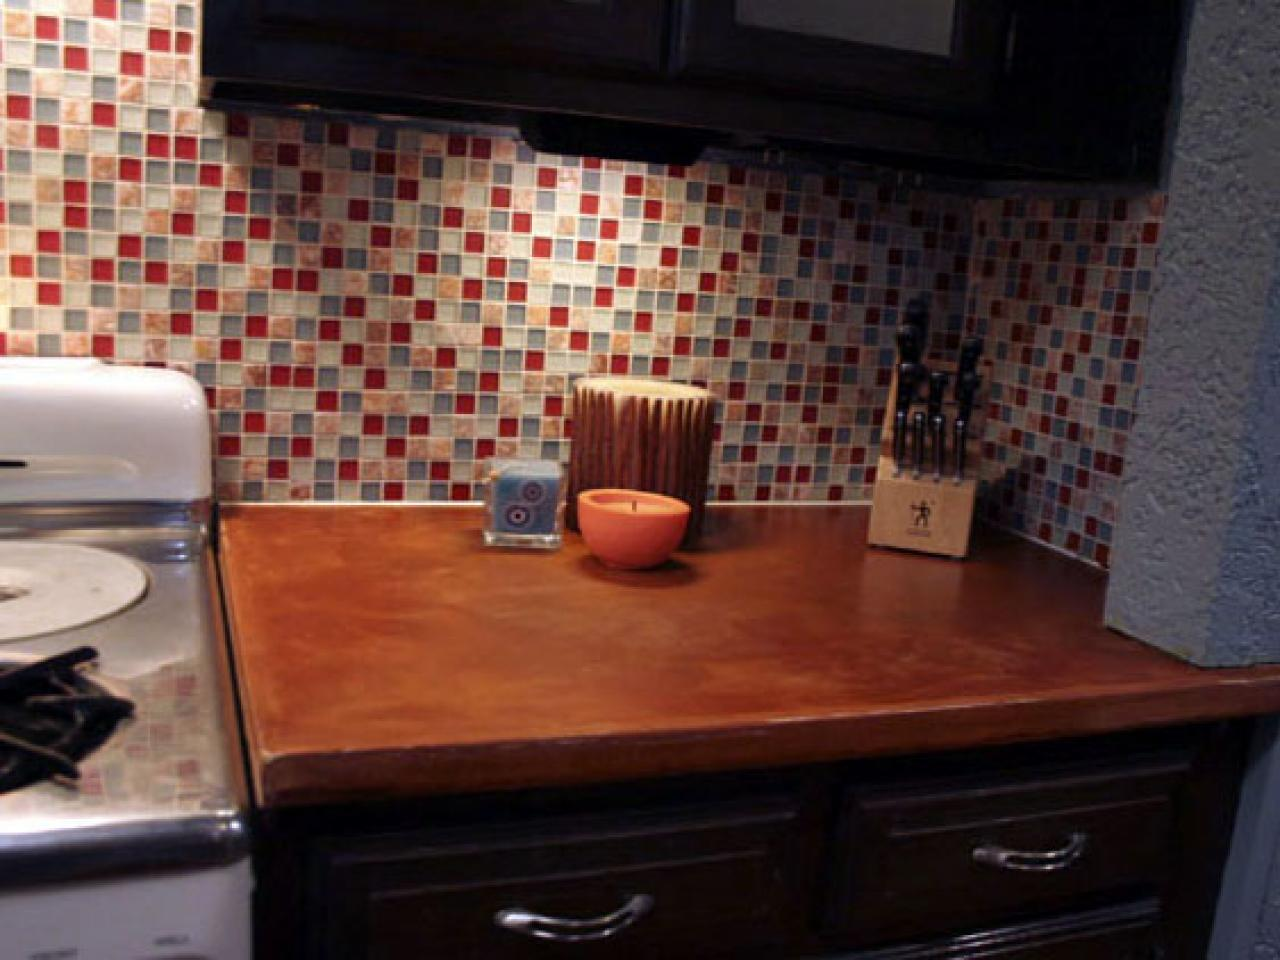 Installing a tile backsplash in your kitchen hgtv Backsplash tile installation